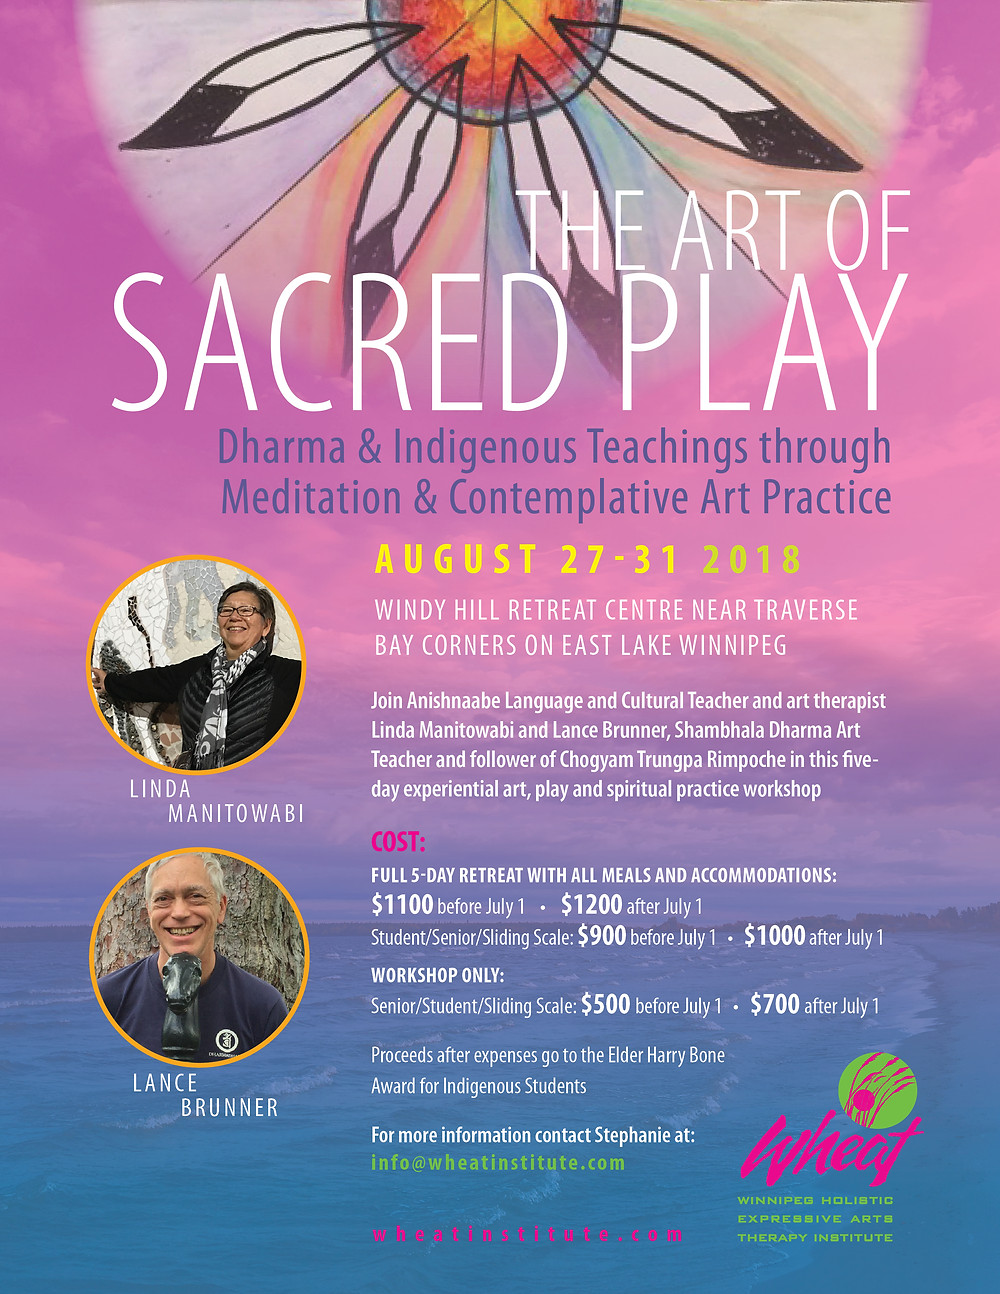 The Art of Sacred Play. Dharma and Indigenous Teaching though Meditation and Contemplative Art Practice